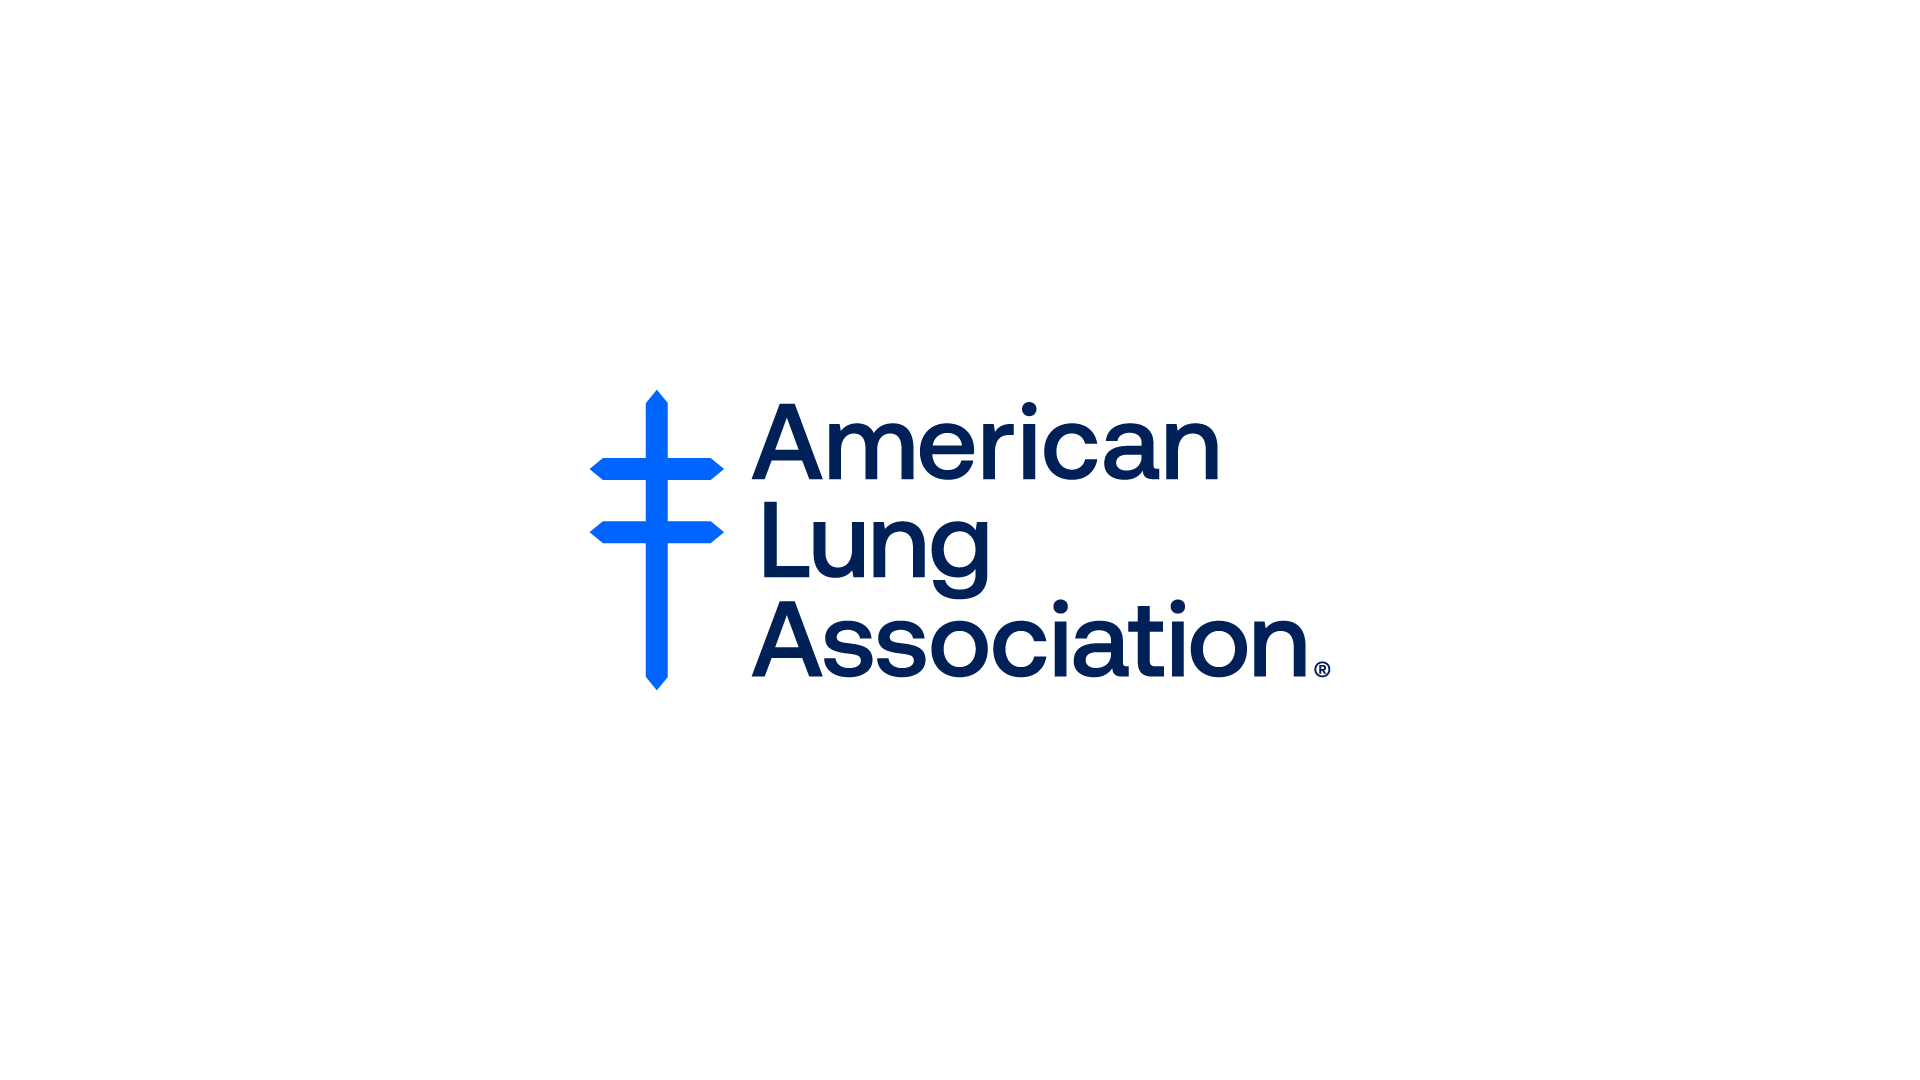 Logo of the American Lung Association